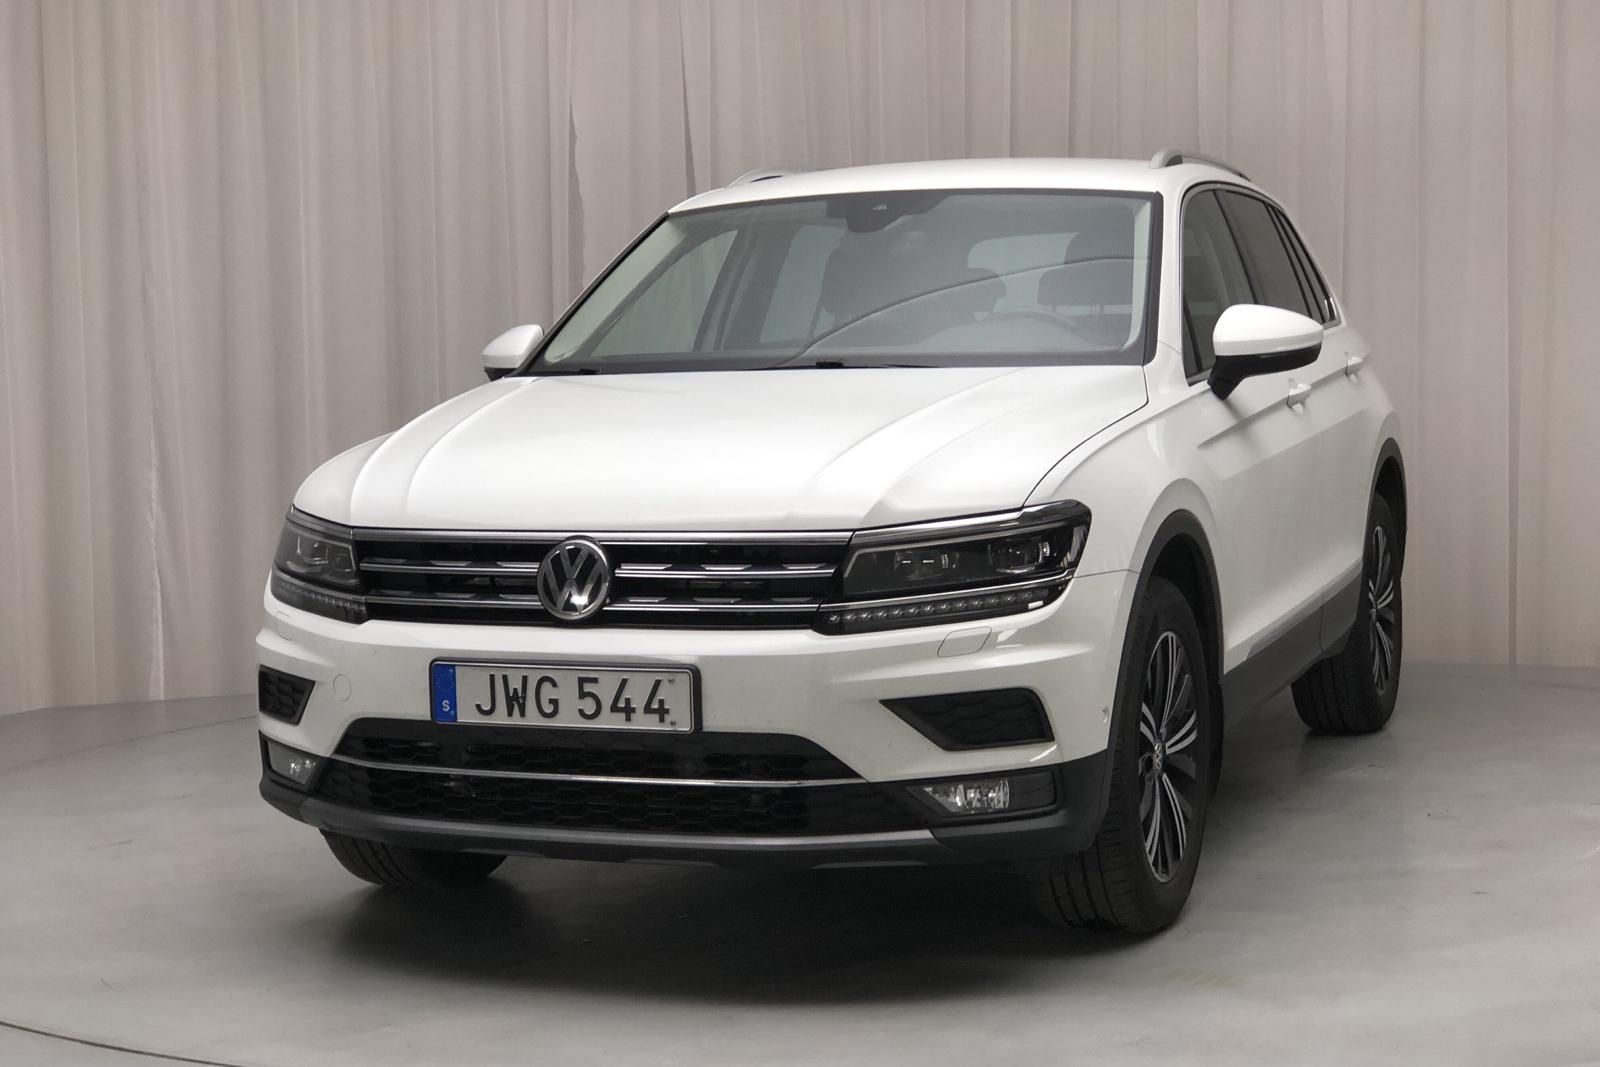 VW Tiguan 2.0 TDI 4MOTION (190 hk)